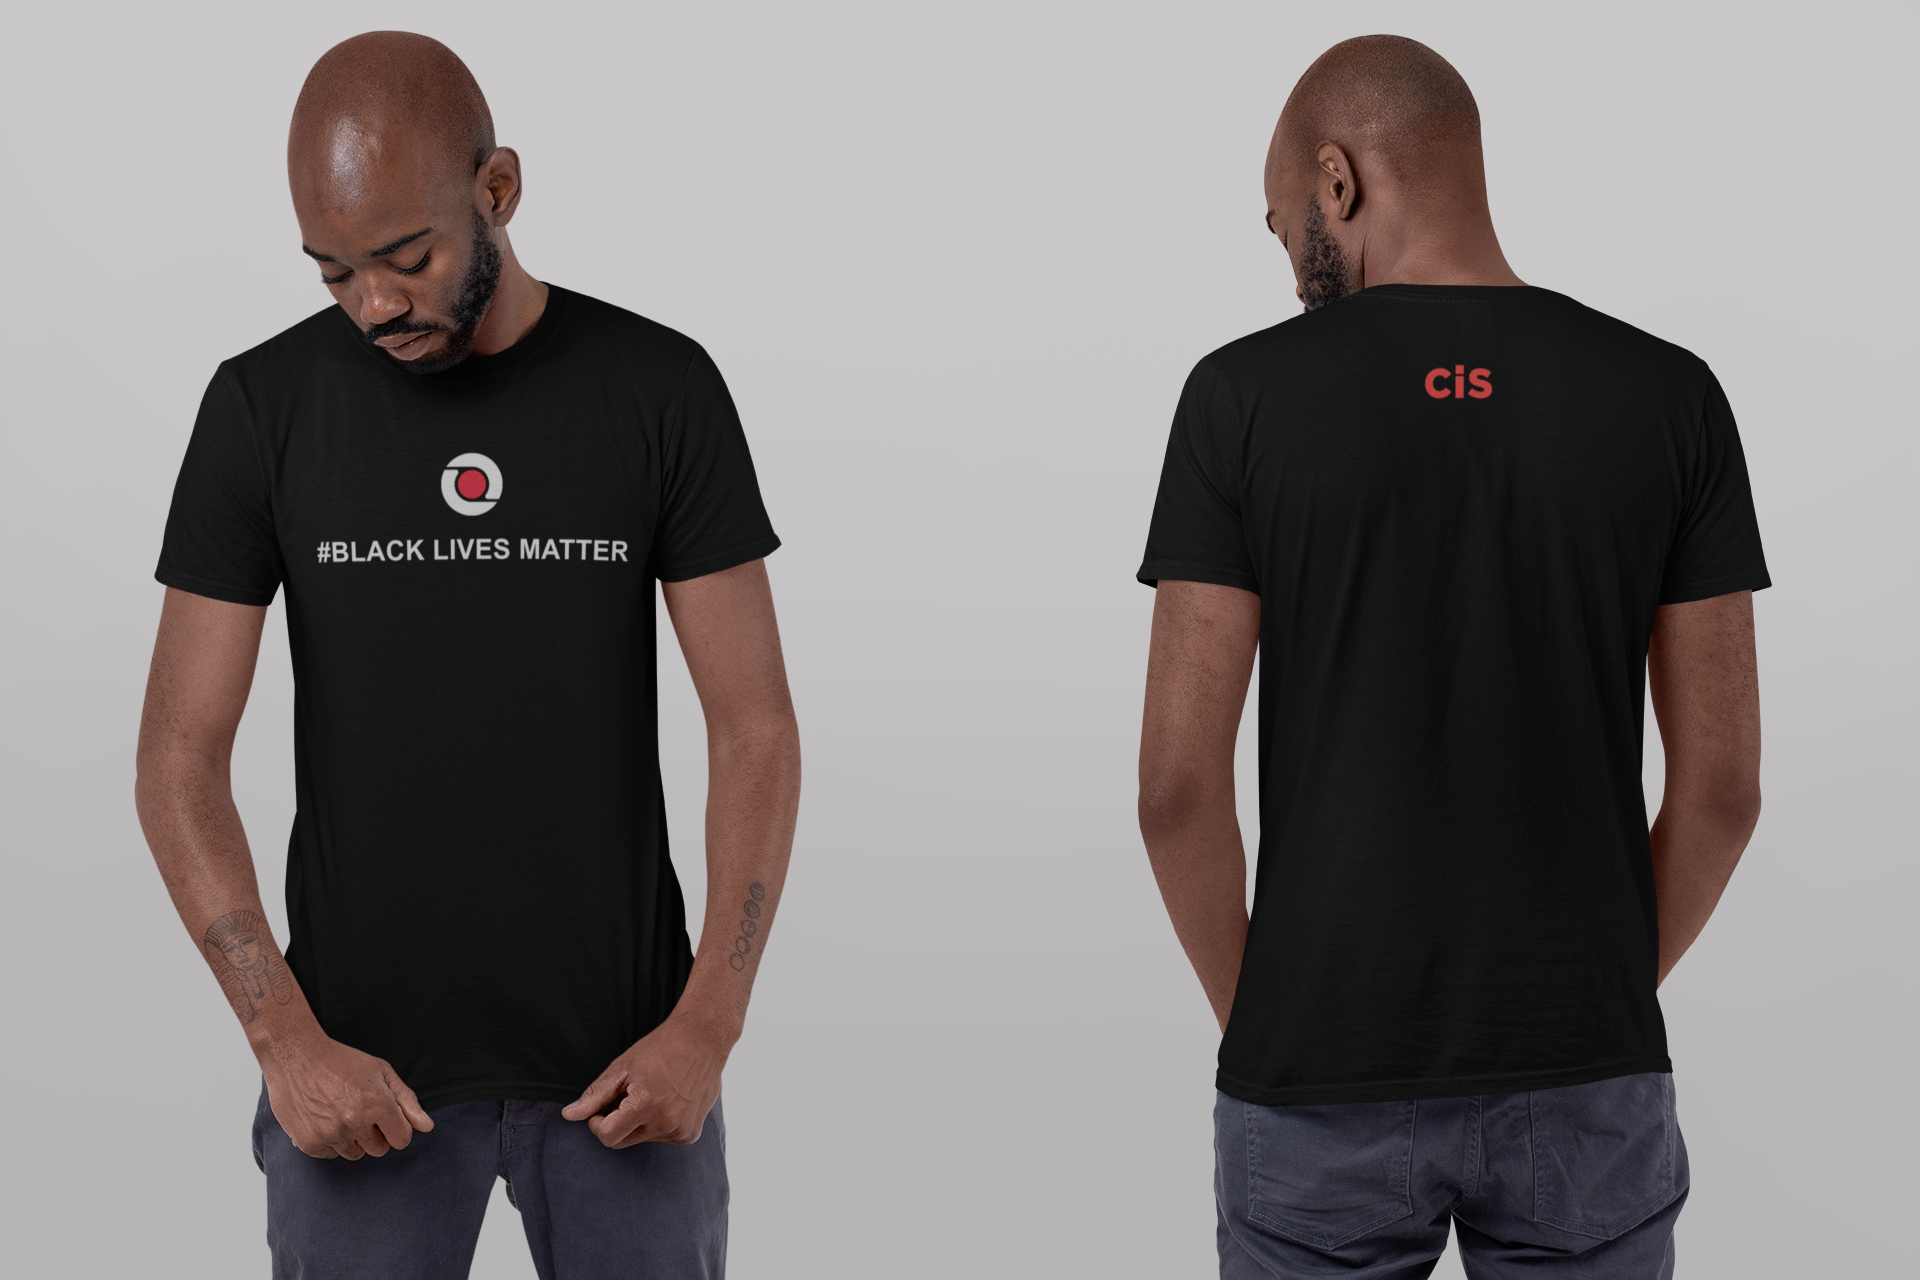 CIS #Black Lives Matter T Shirt